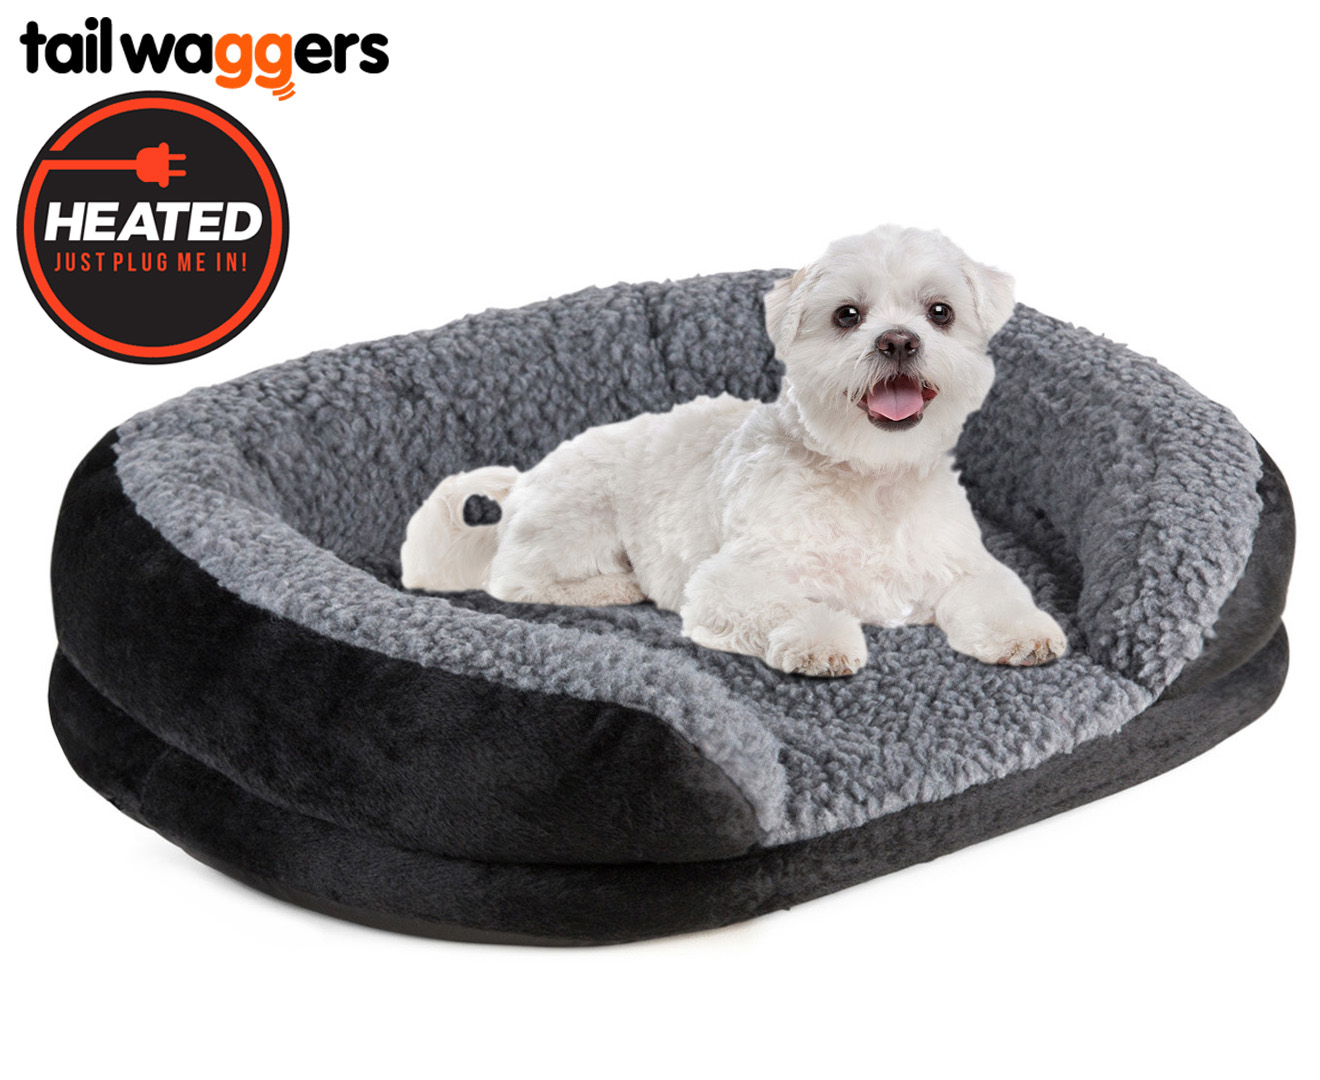 heated oval pet bed by tail waggers 50x40cm for small dogs - Heated Dog Bed